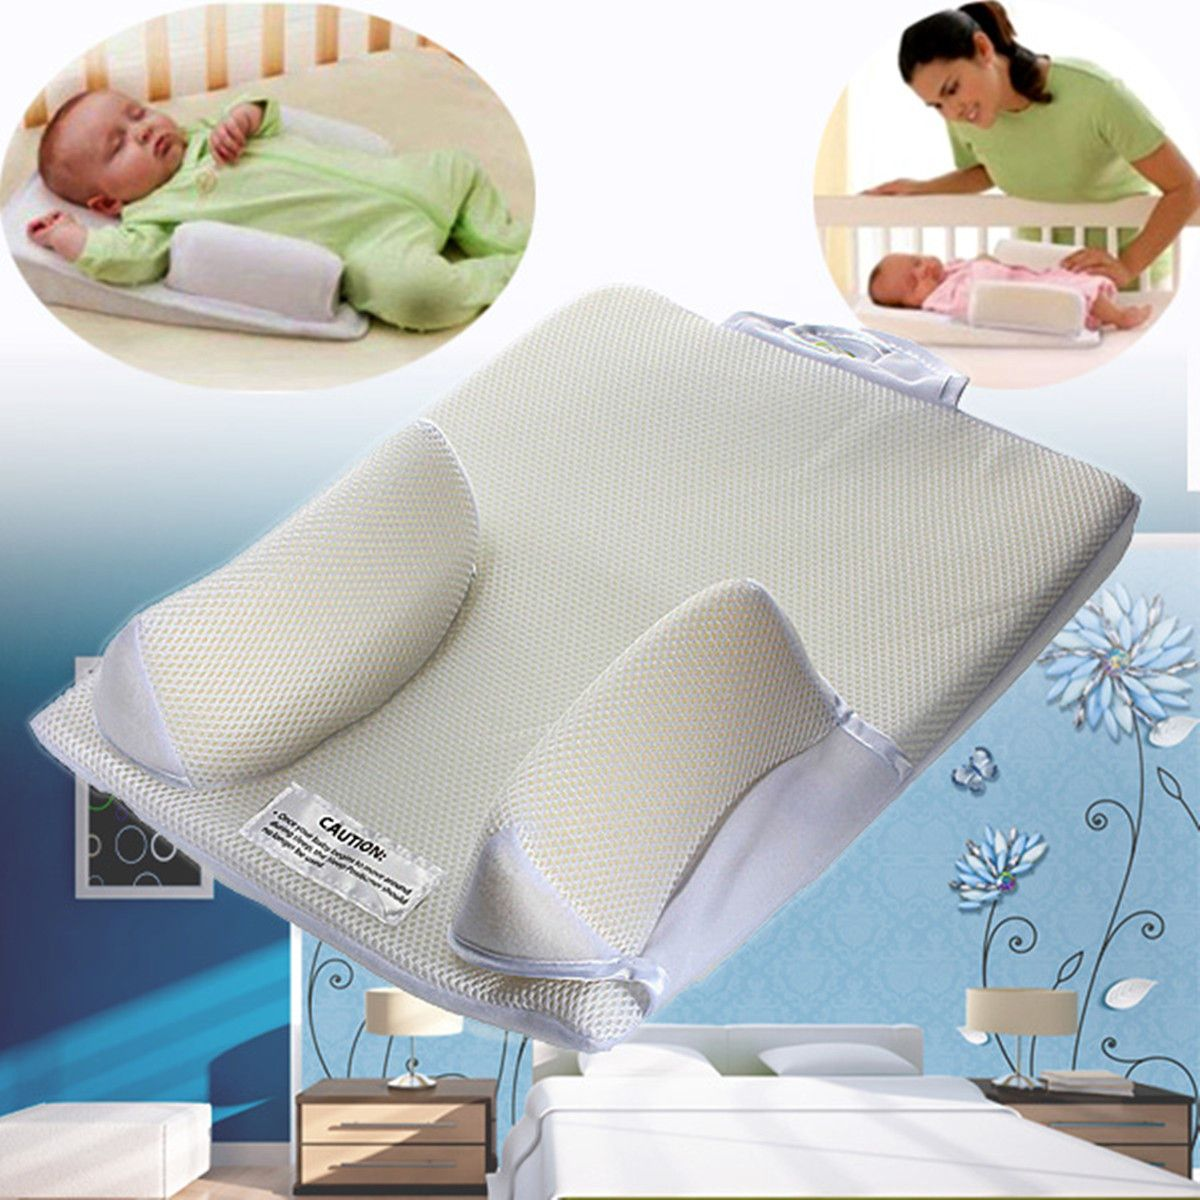 Baby Care Infant Newborn Anti Roll Pillow U Ltimate Vent Sleep Fixed Positioner Prevent Flat Head Sleeping Cushion